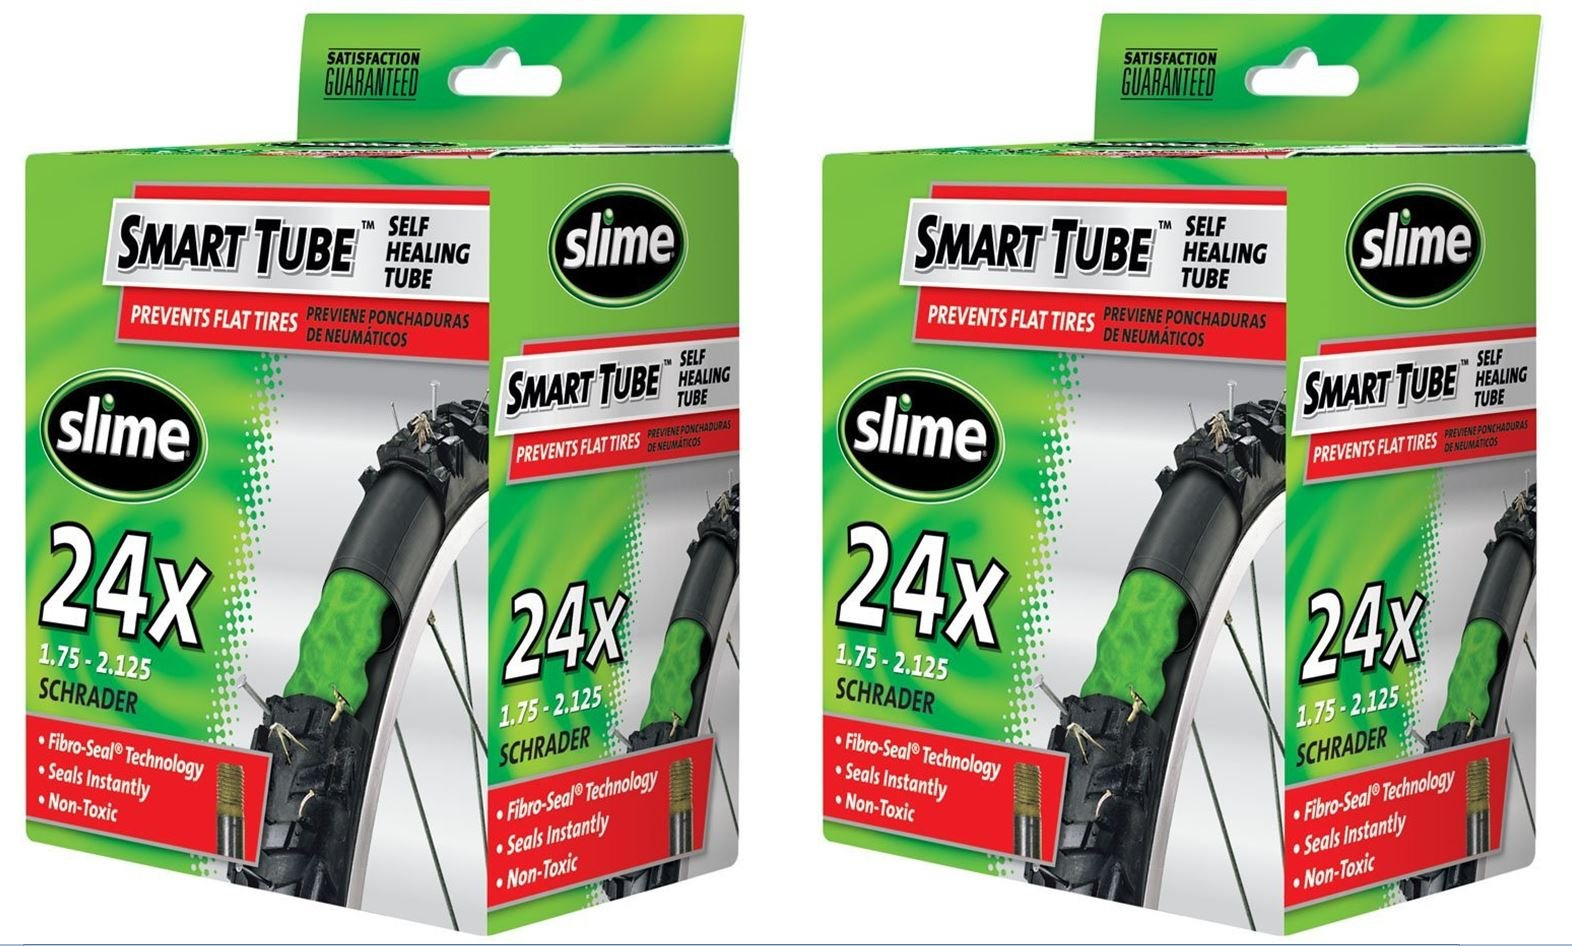 Slime Smart Tube Schrader Valve Bicycle Tube (24'' X 1.75 to 2.125), 2 Pack by Slime (Image #1)